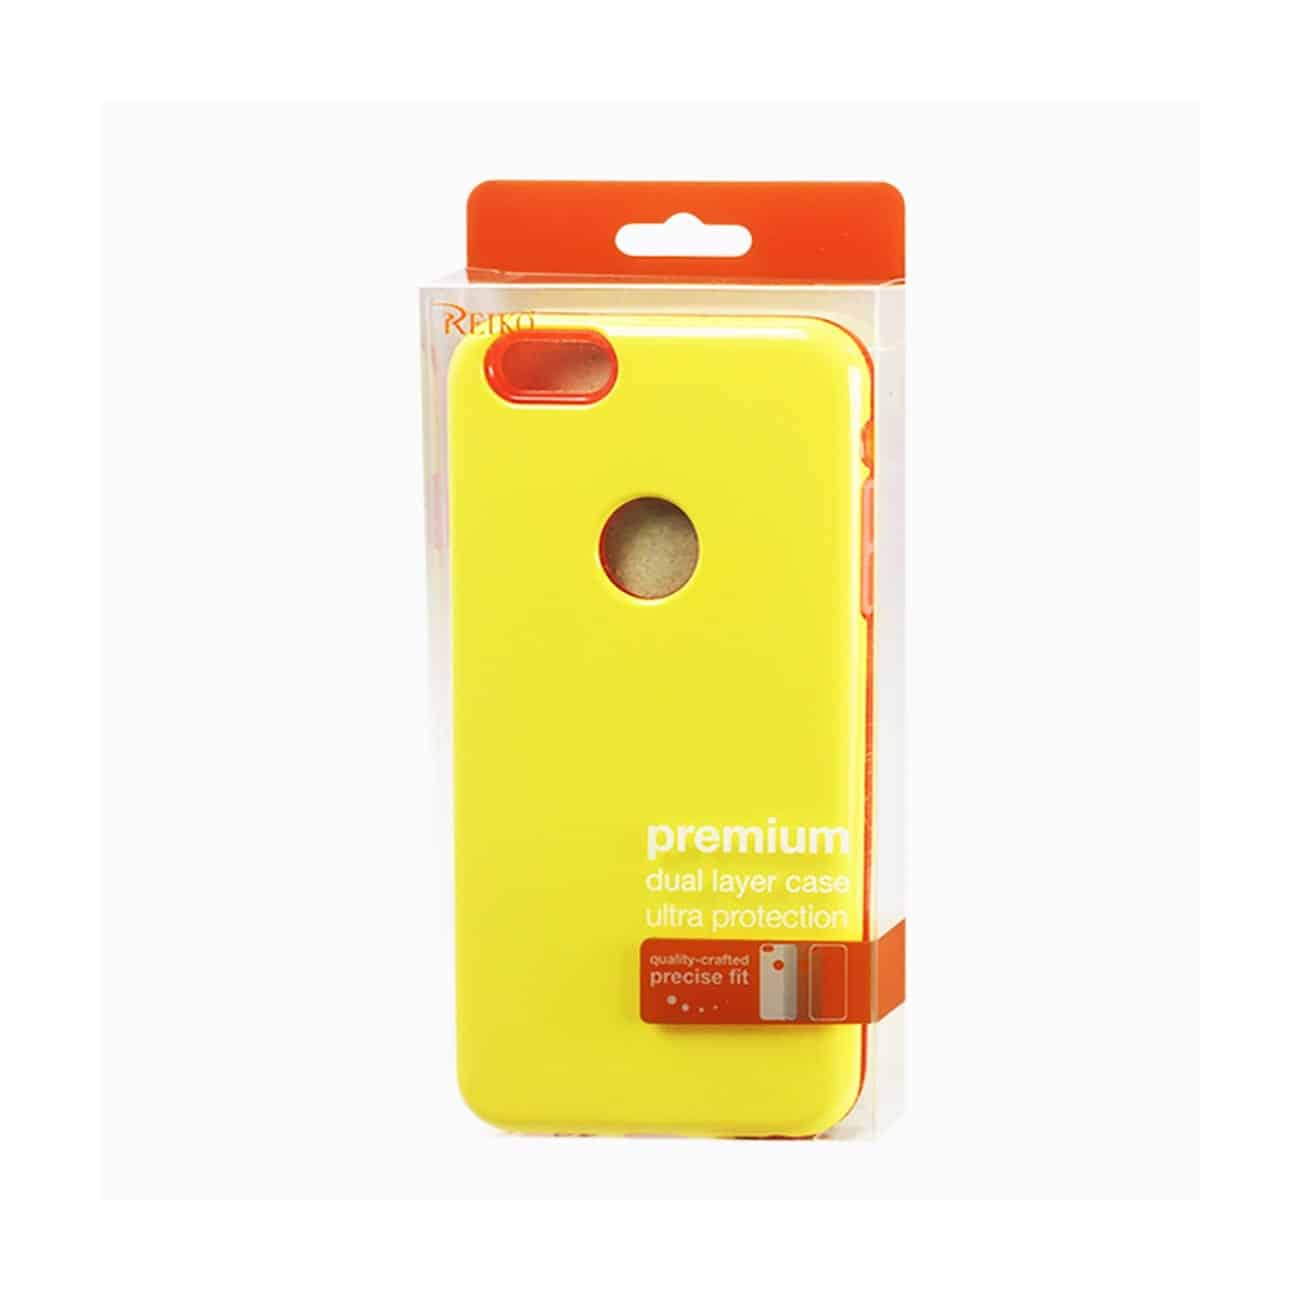 IPHONE 6 PLUS SLIM ARMOR CANDY SHIELD CASE IN YELLOW